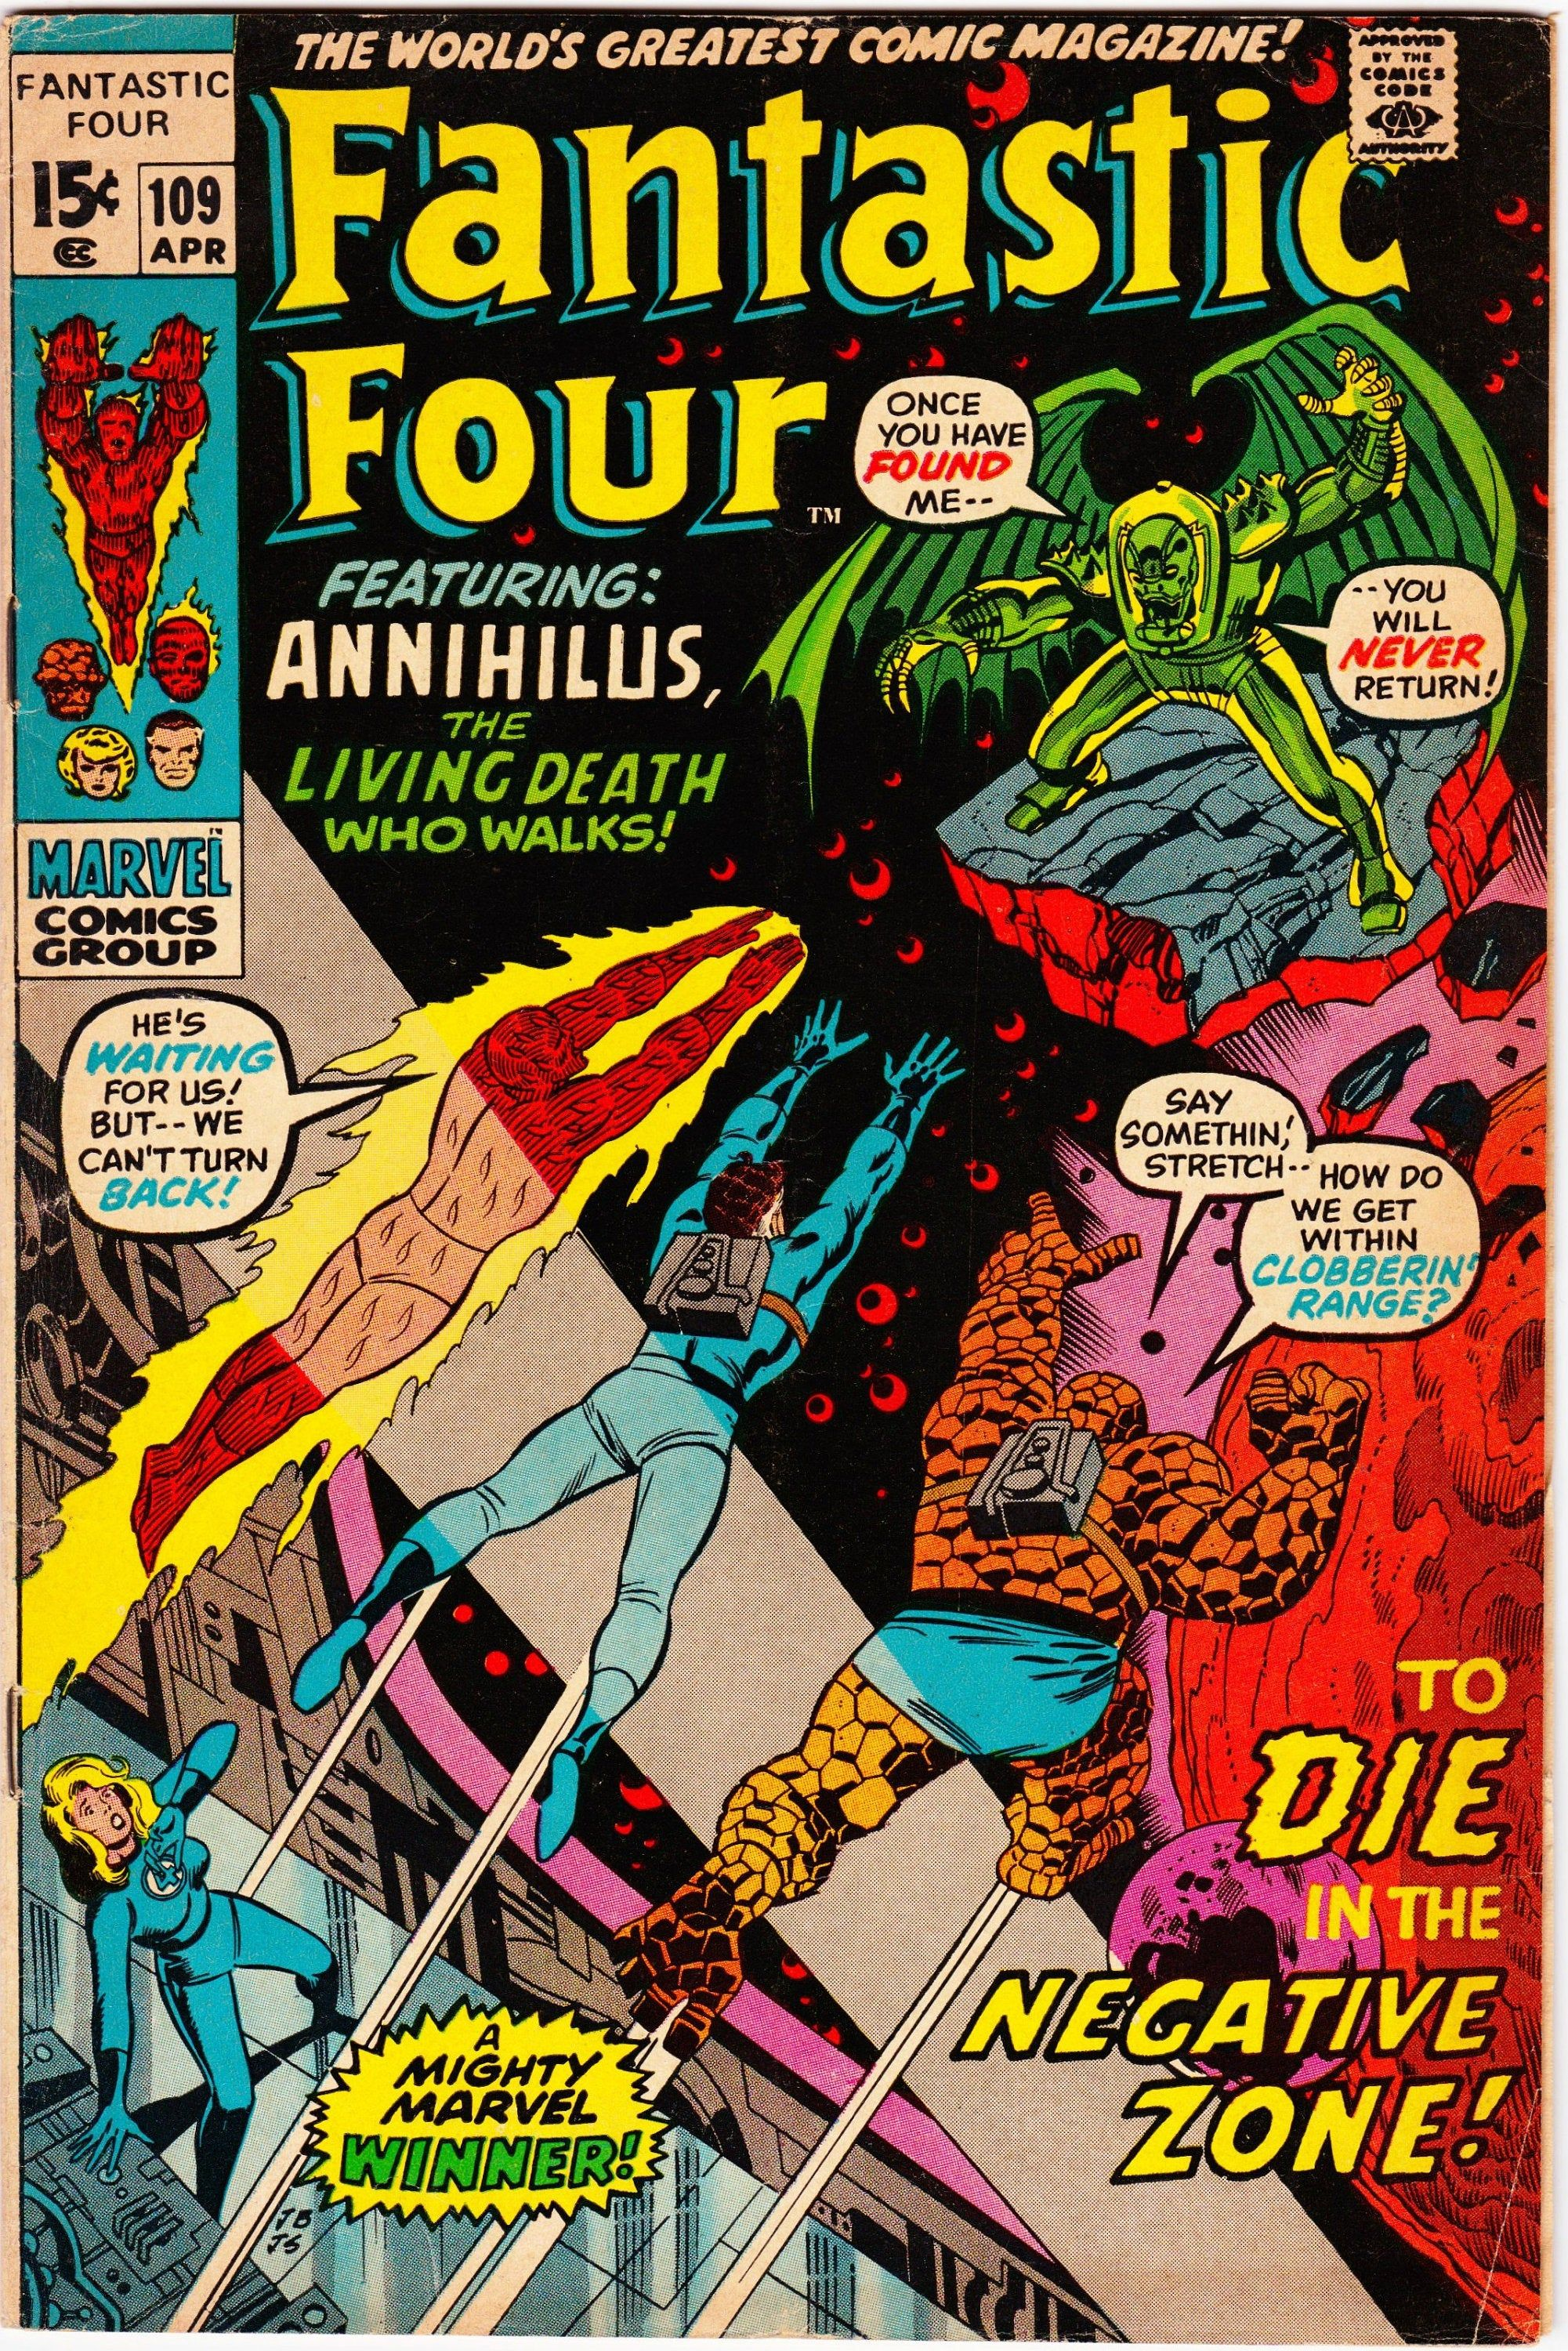 Fantastic Four #109 (1st Series 1961) May 1971 Marvel Comics Grade VG/F #comicbooks